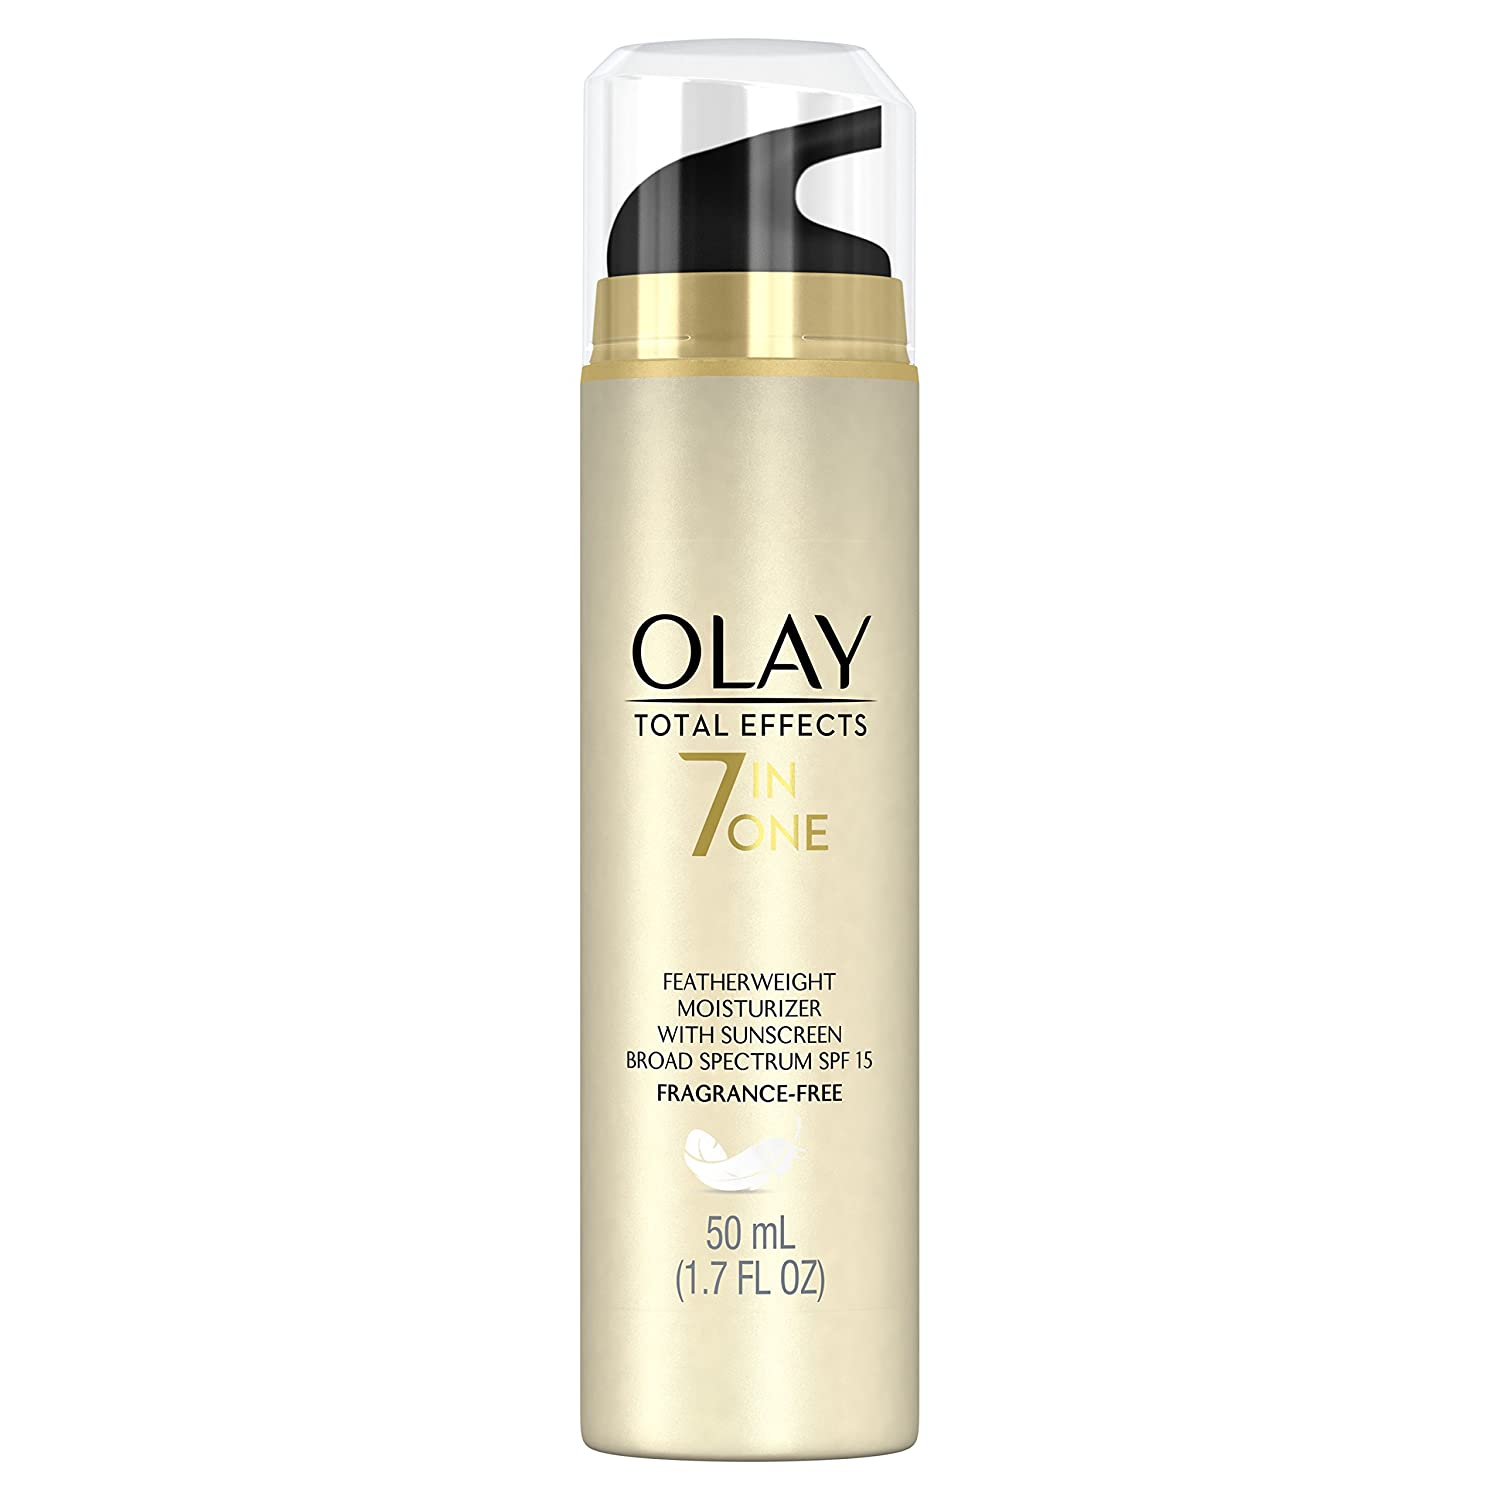 Olay Total Effects Fragrance Free Featherweight Moisturizer with SPF 15, 1.7 Fluid Ounce by Procter & Gamble - HABA Hub